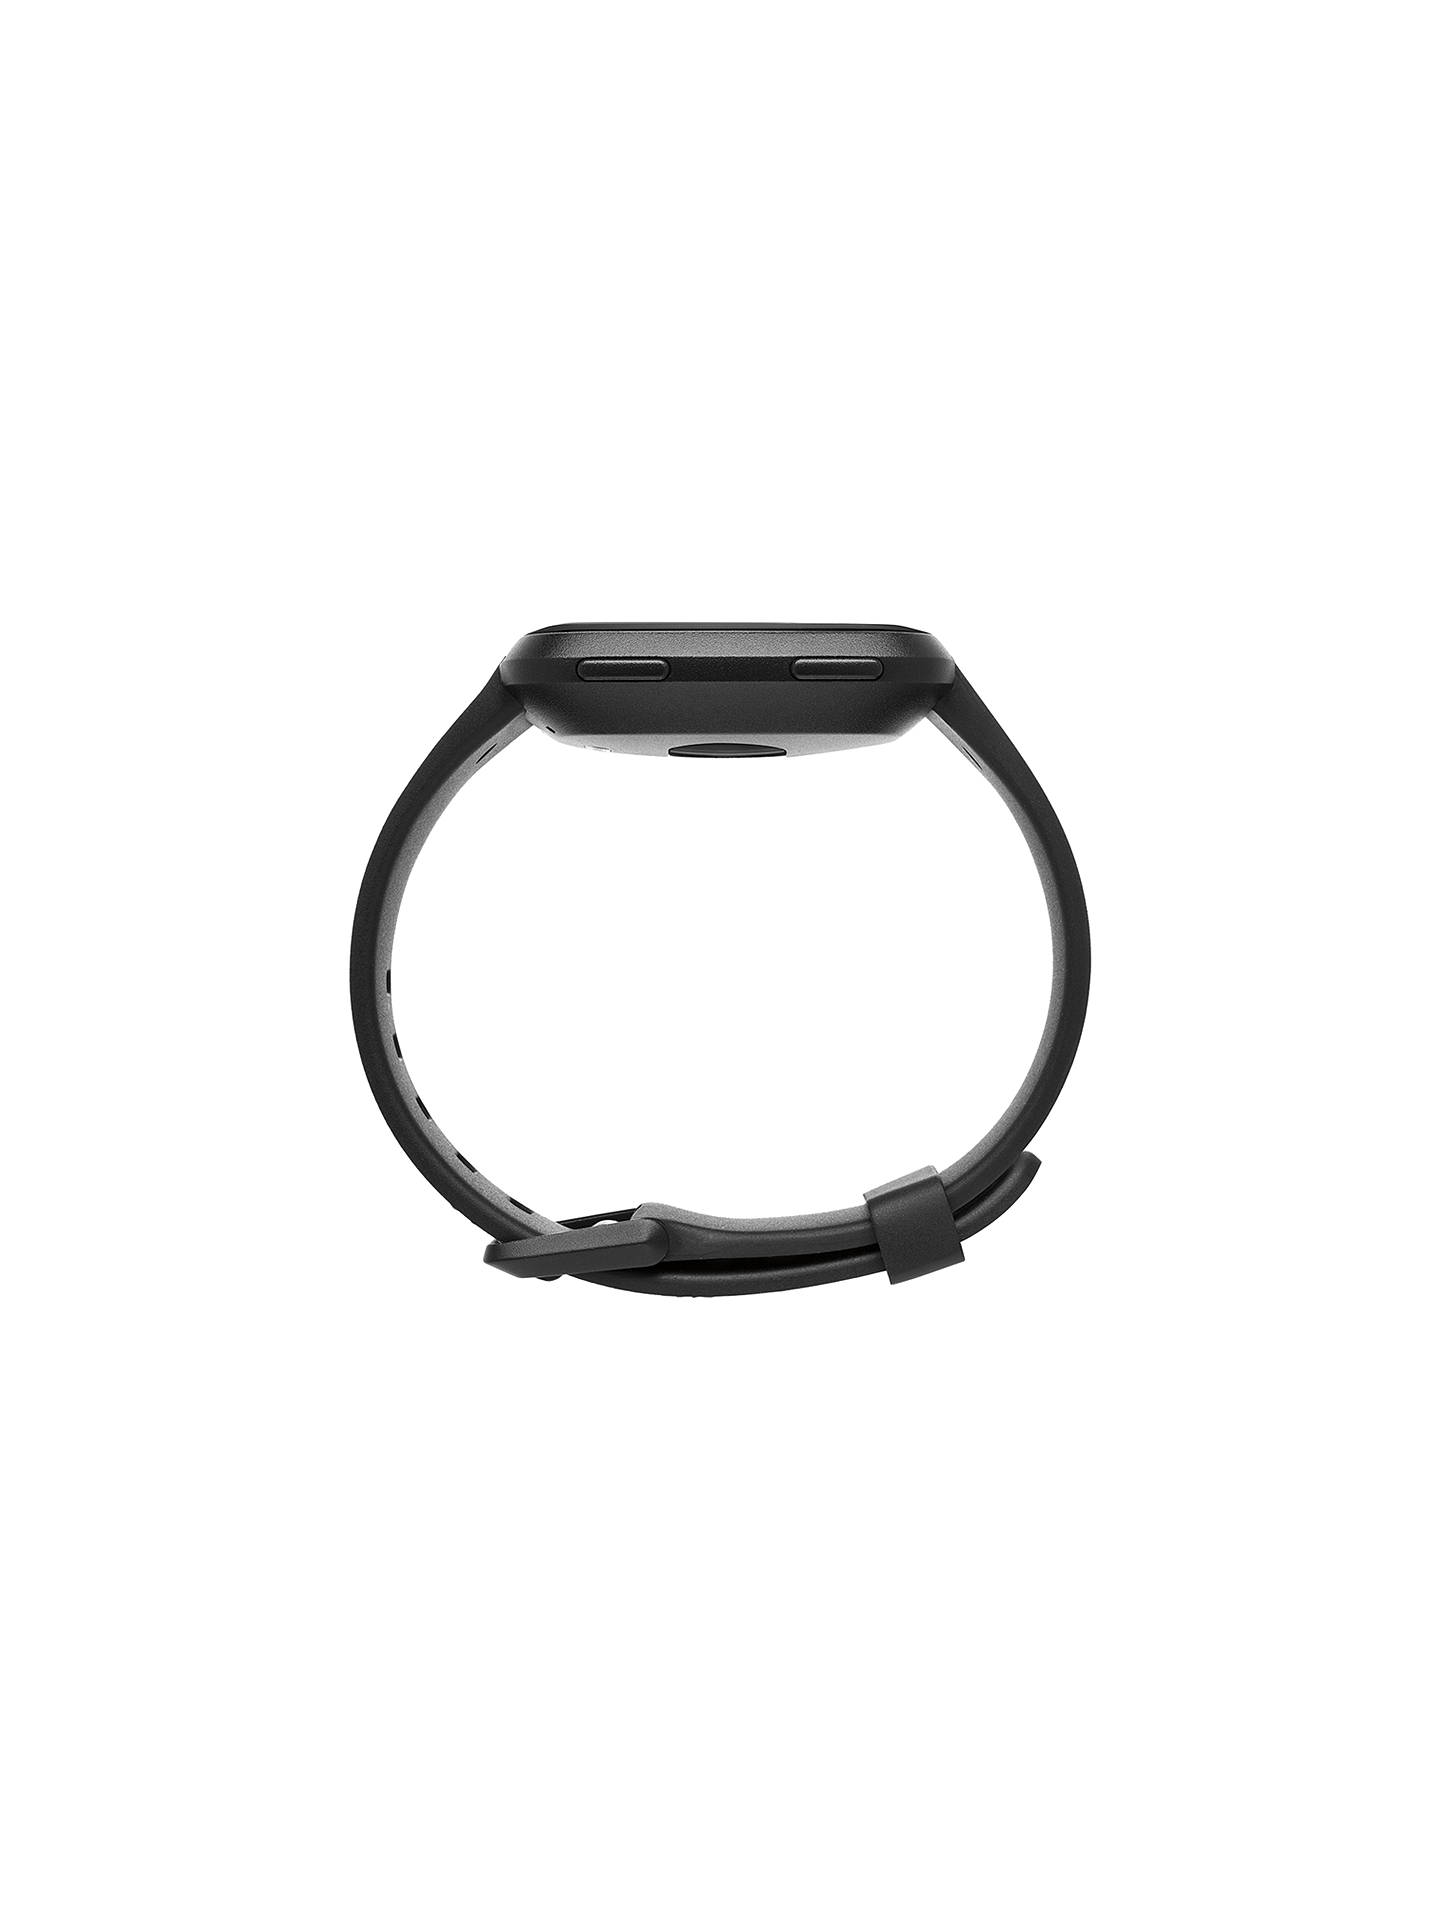 BuyFitbit Versa Smart Fitness Watch, Black/Aluminium Online at johnlewis.com